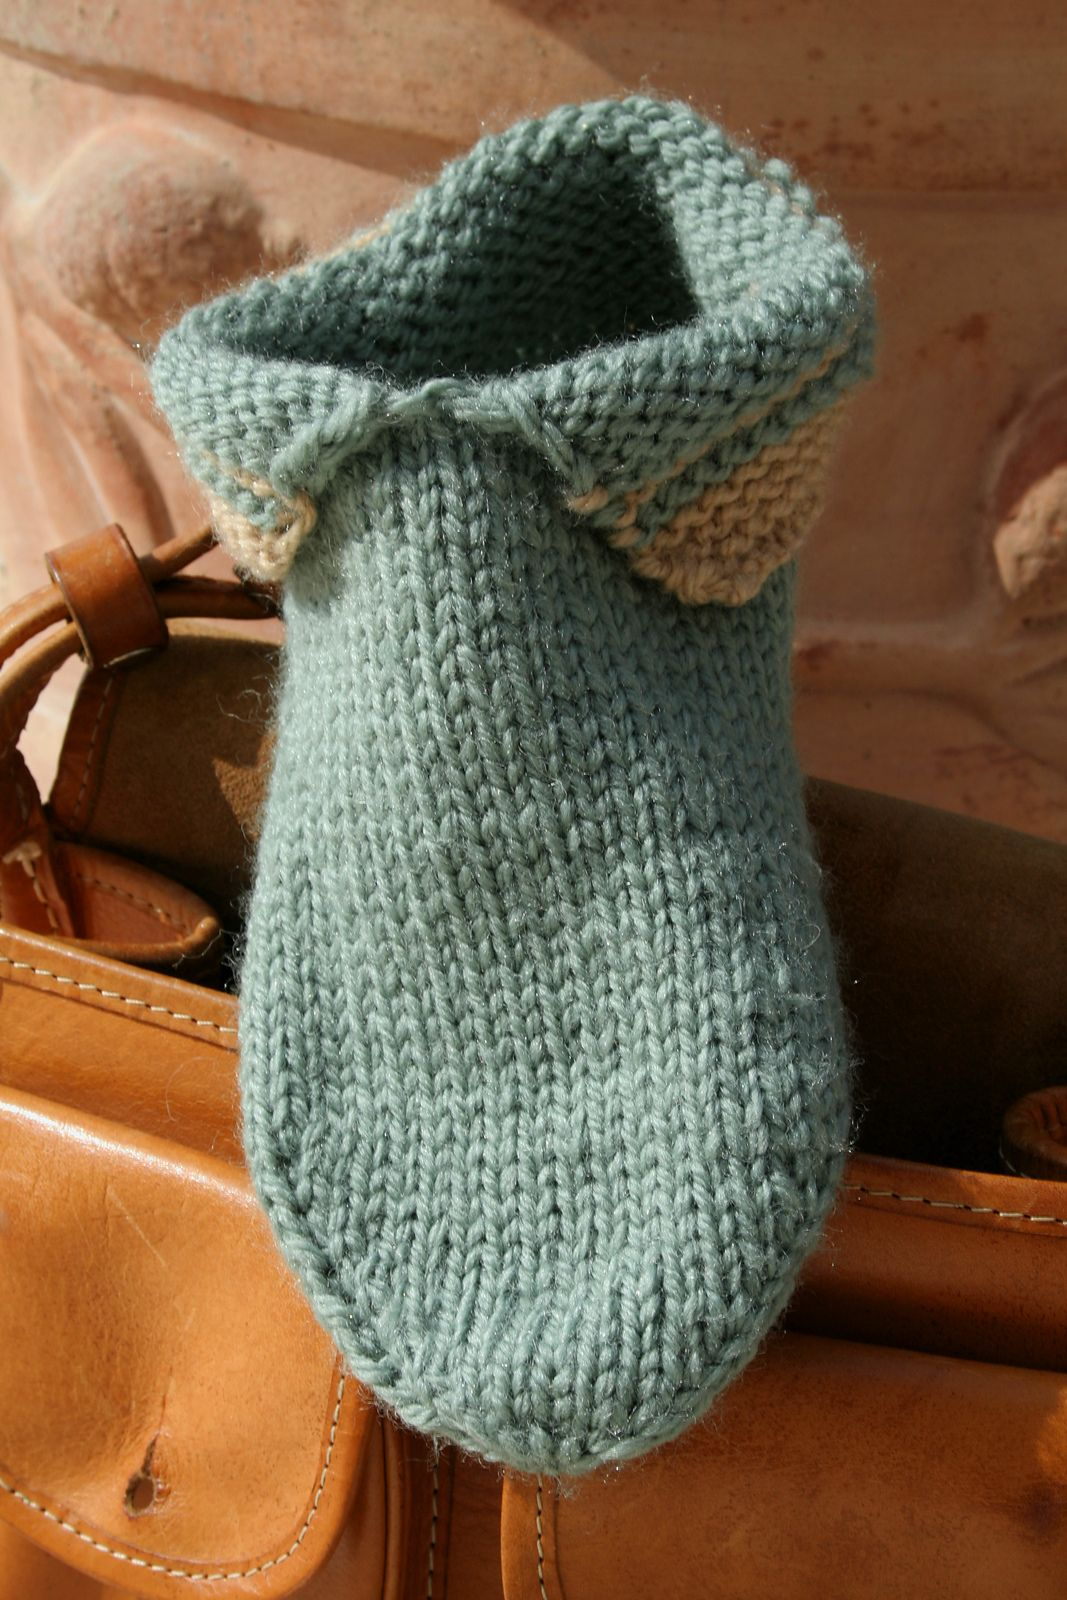 Free Knitting Pattern for Grouse Slippers | STITCHES | Pinterest ...